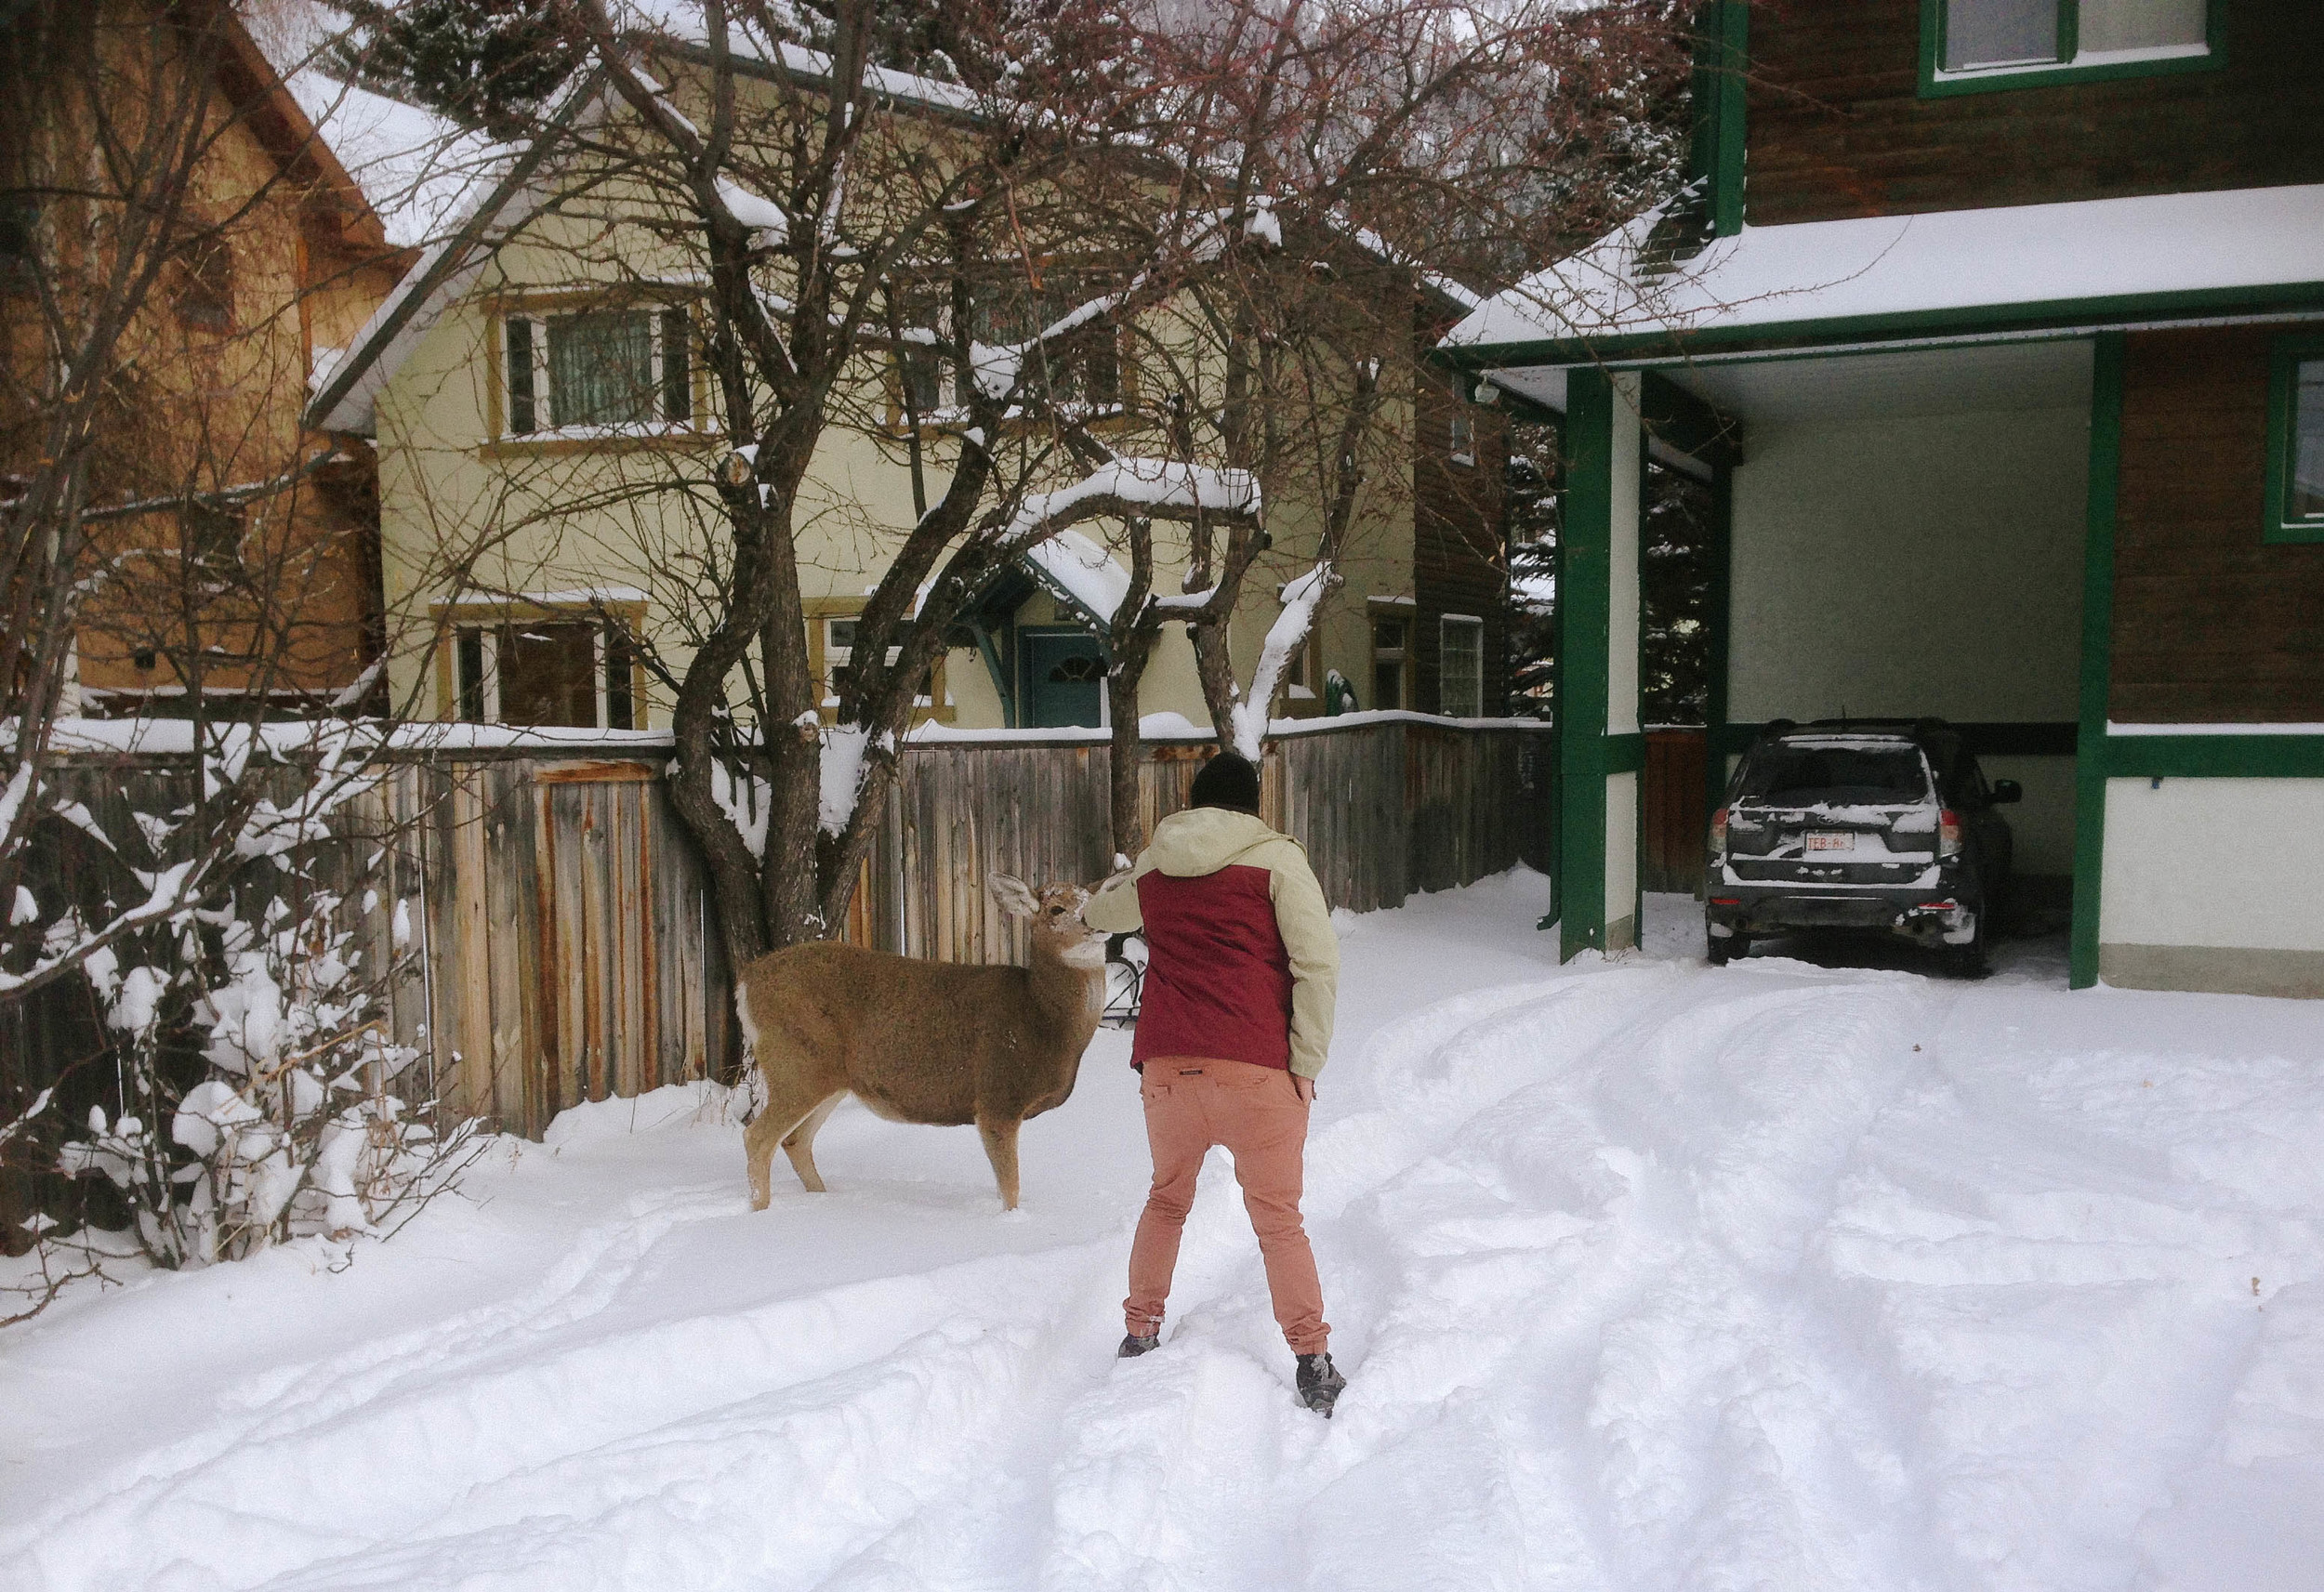 Jonny petting a deer in the backyard.